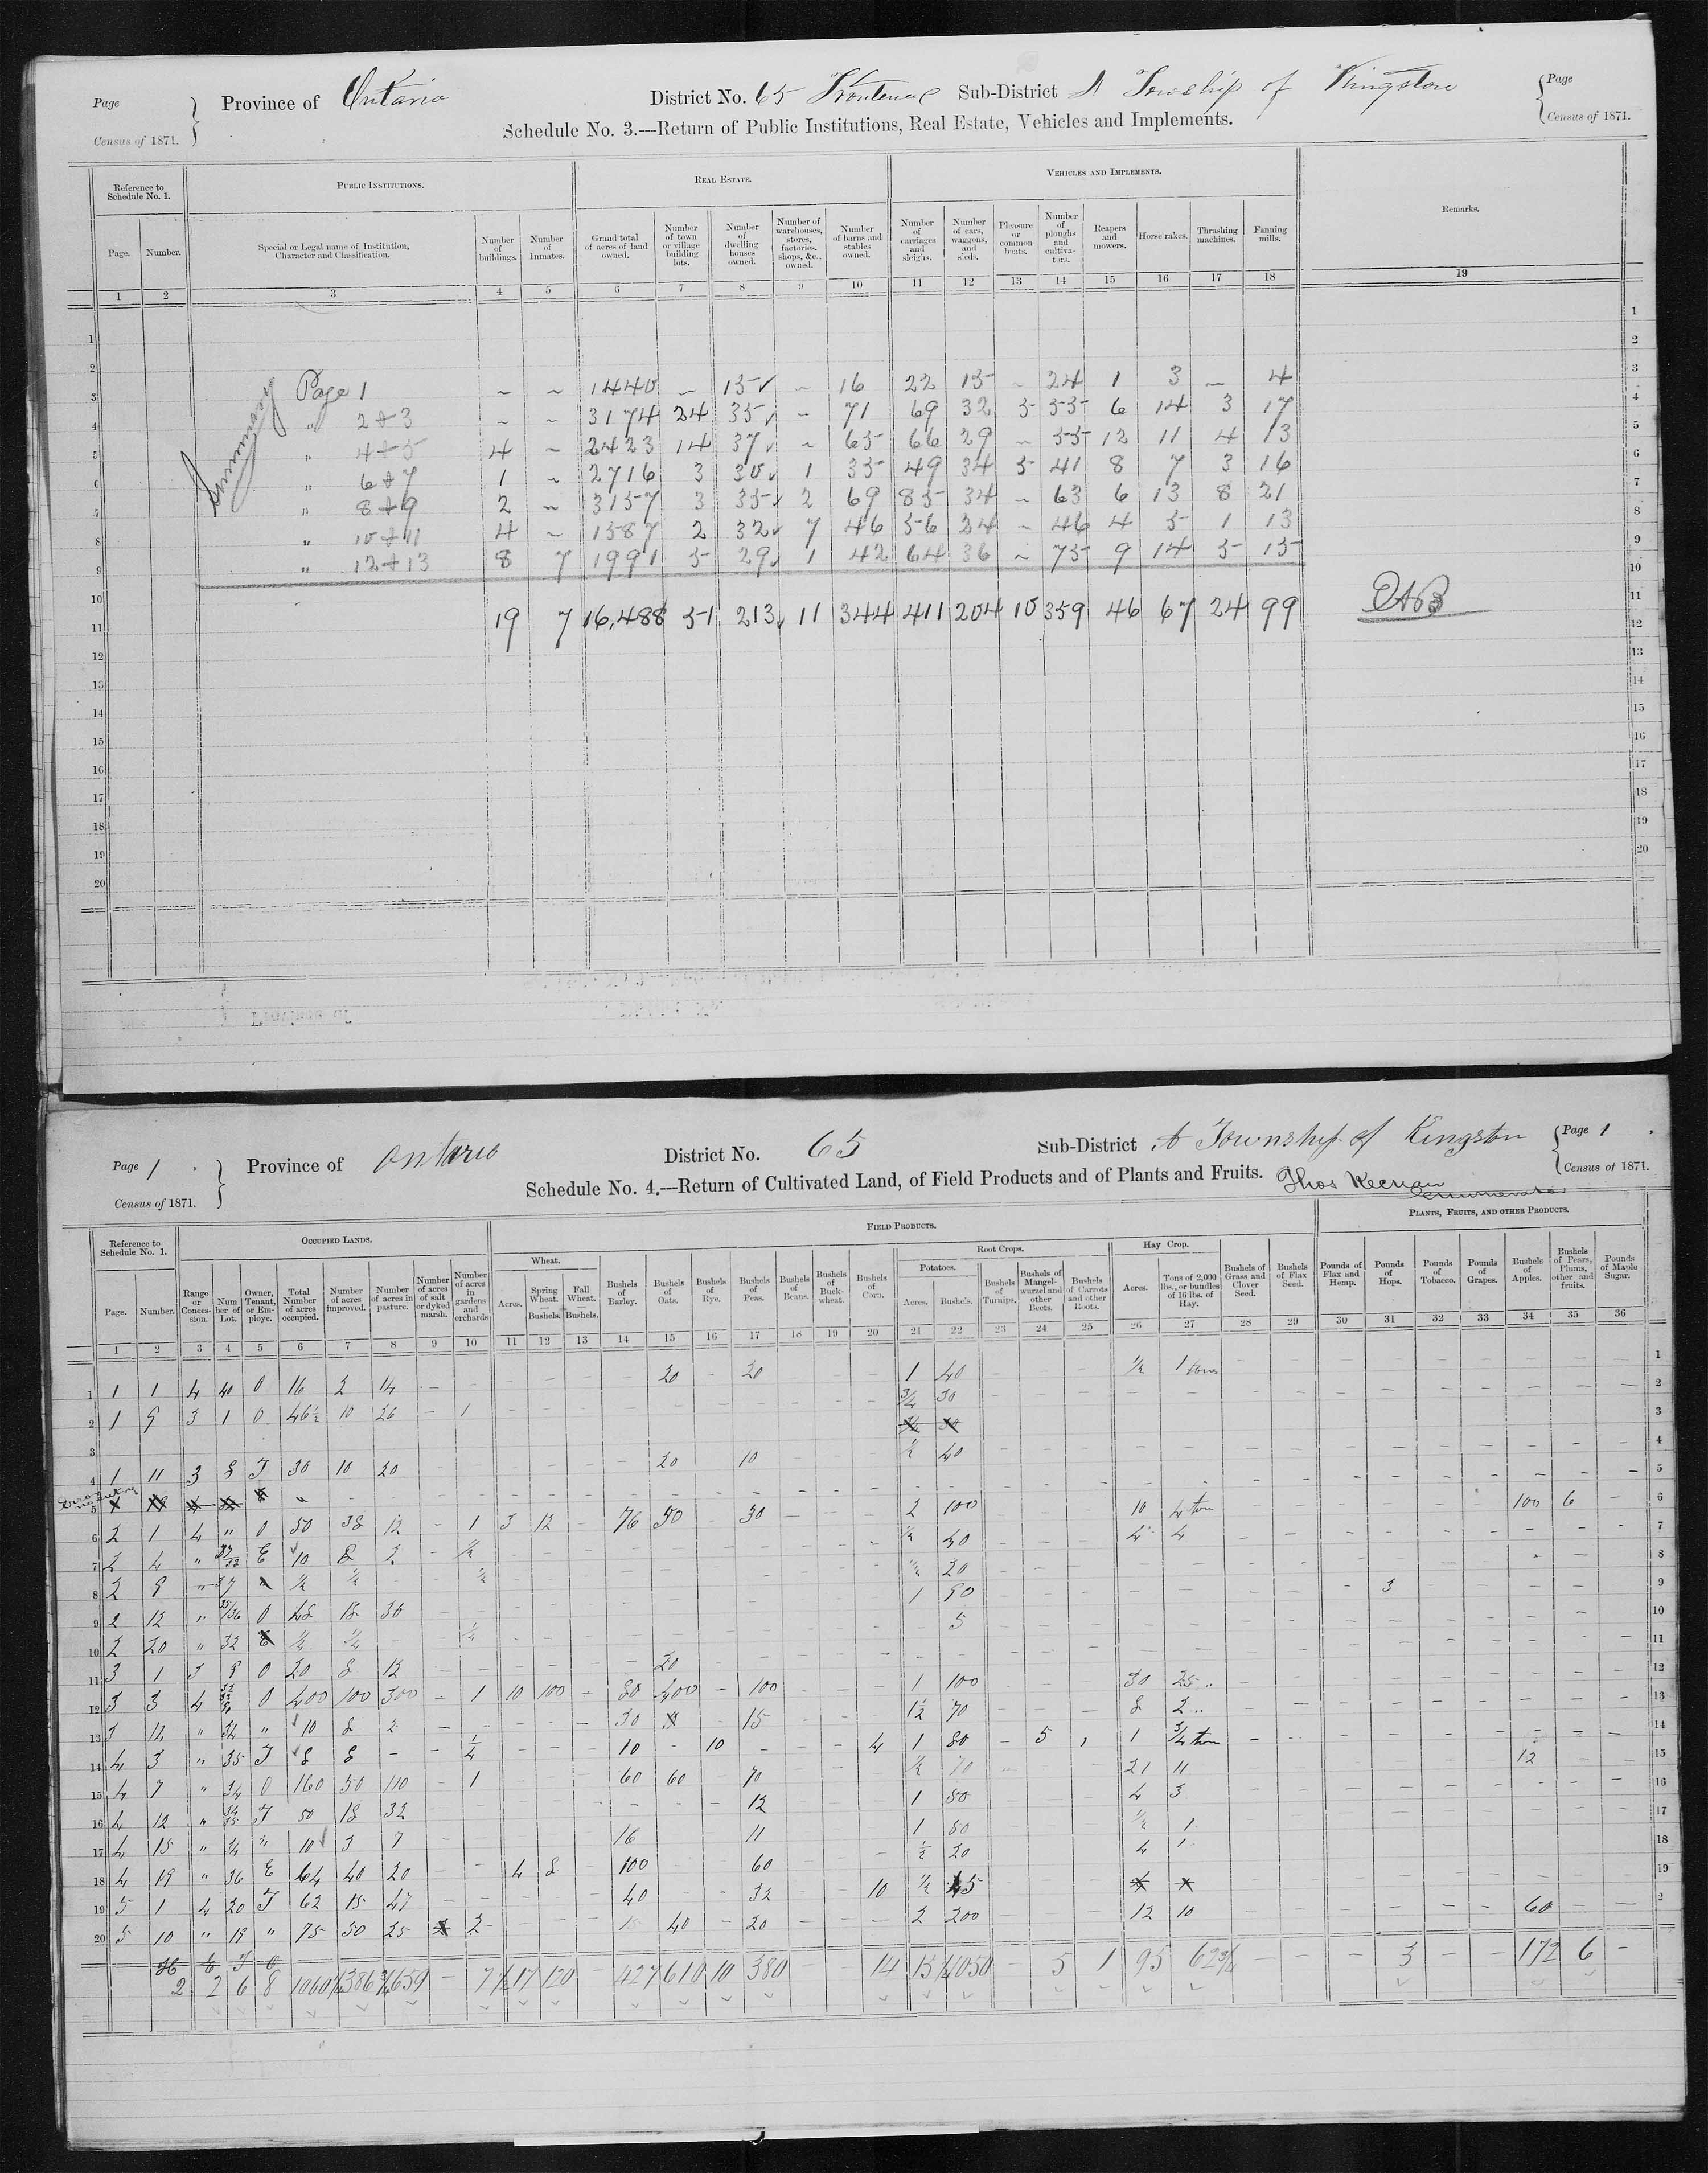 Title: Census of Canada, 1871 - Mikan Number: 142105 - Microform: c-9998